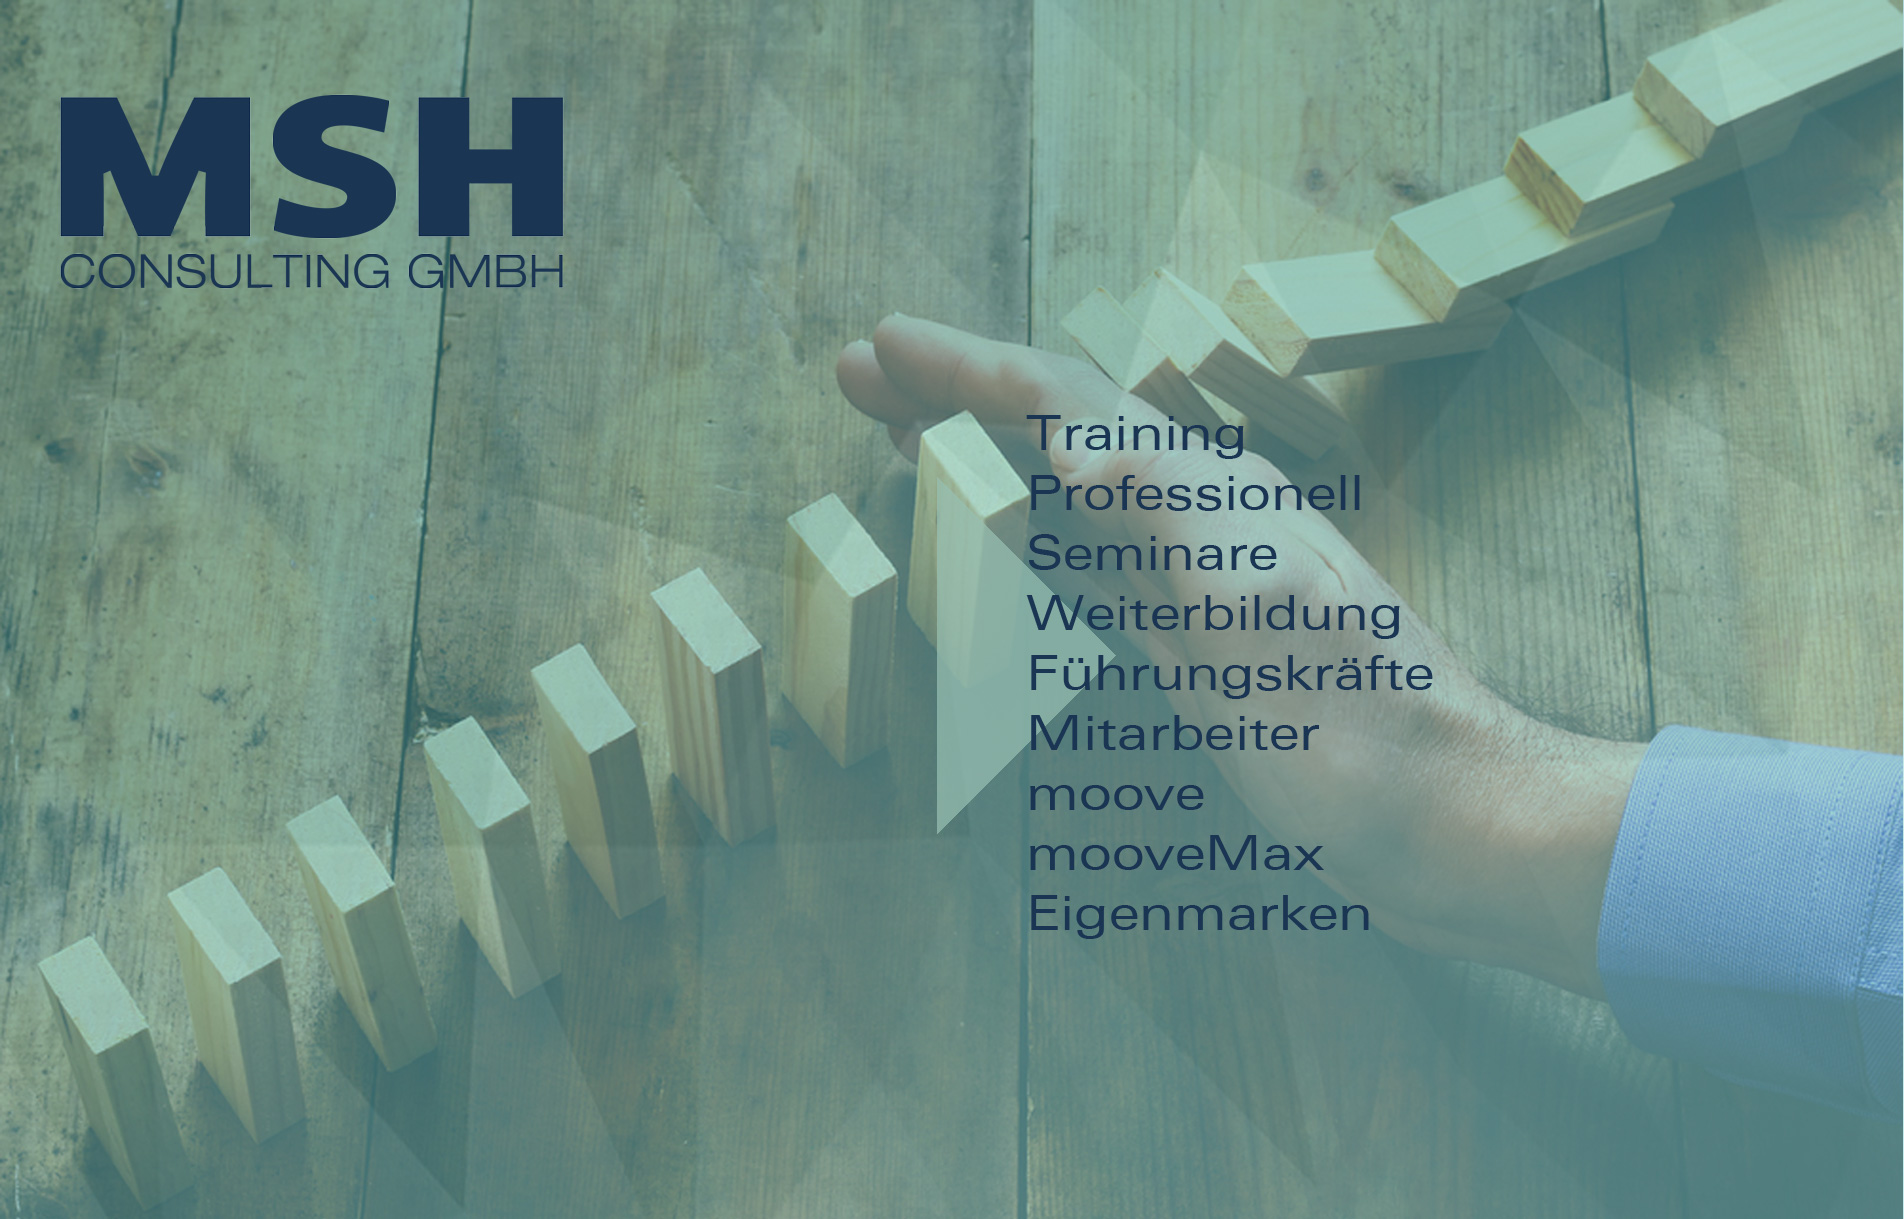 MSH-Consulting